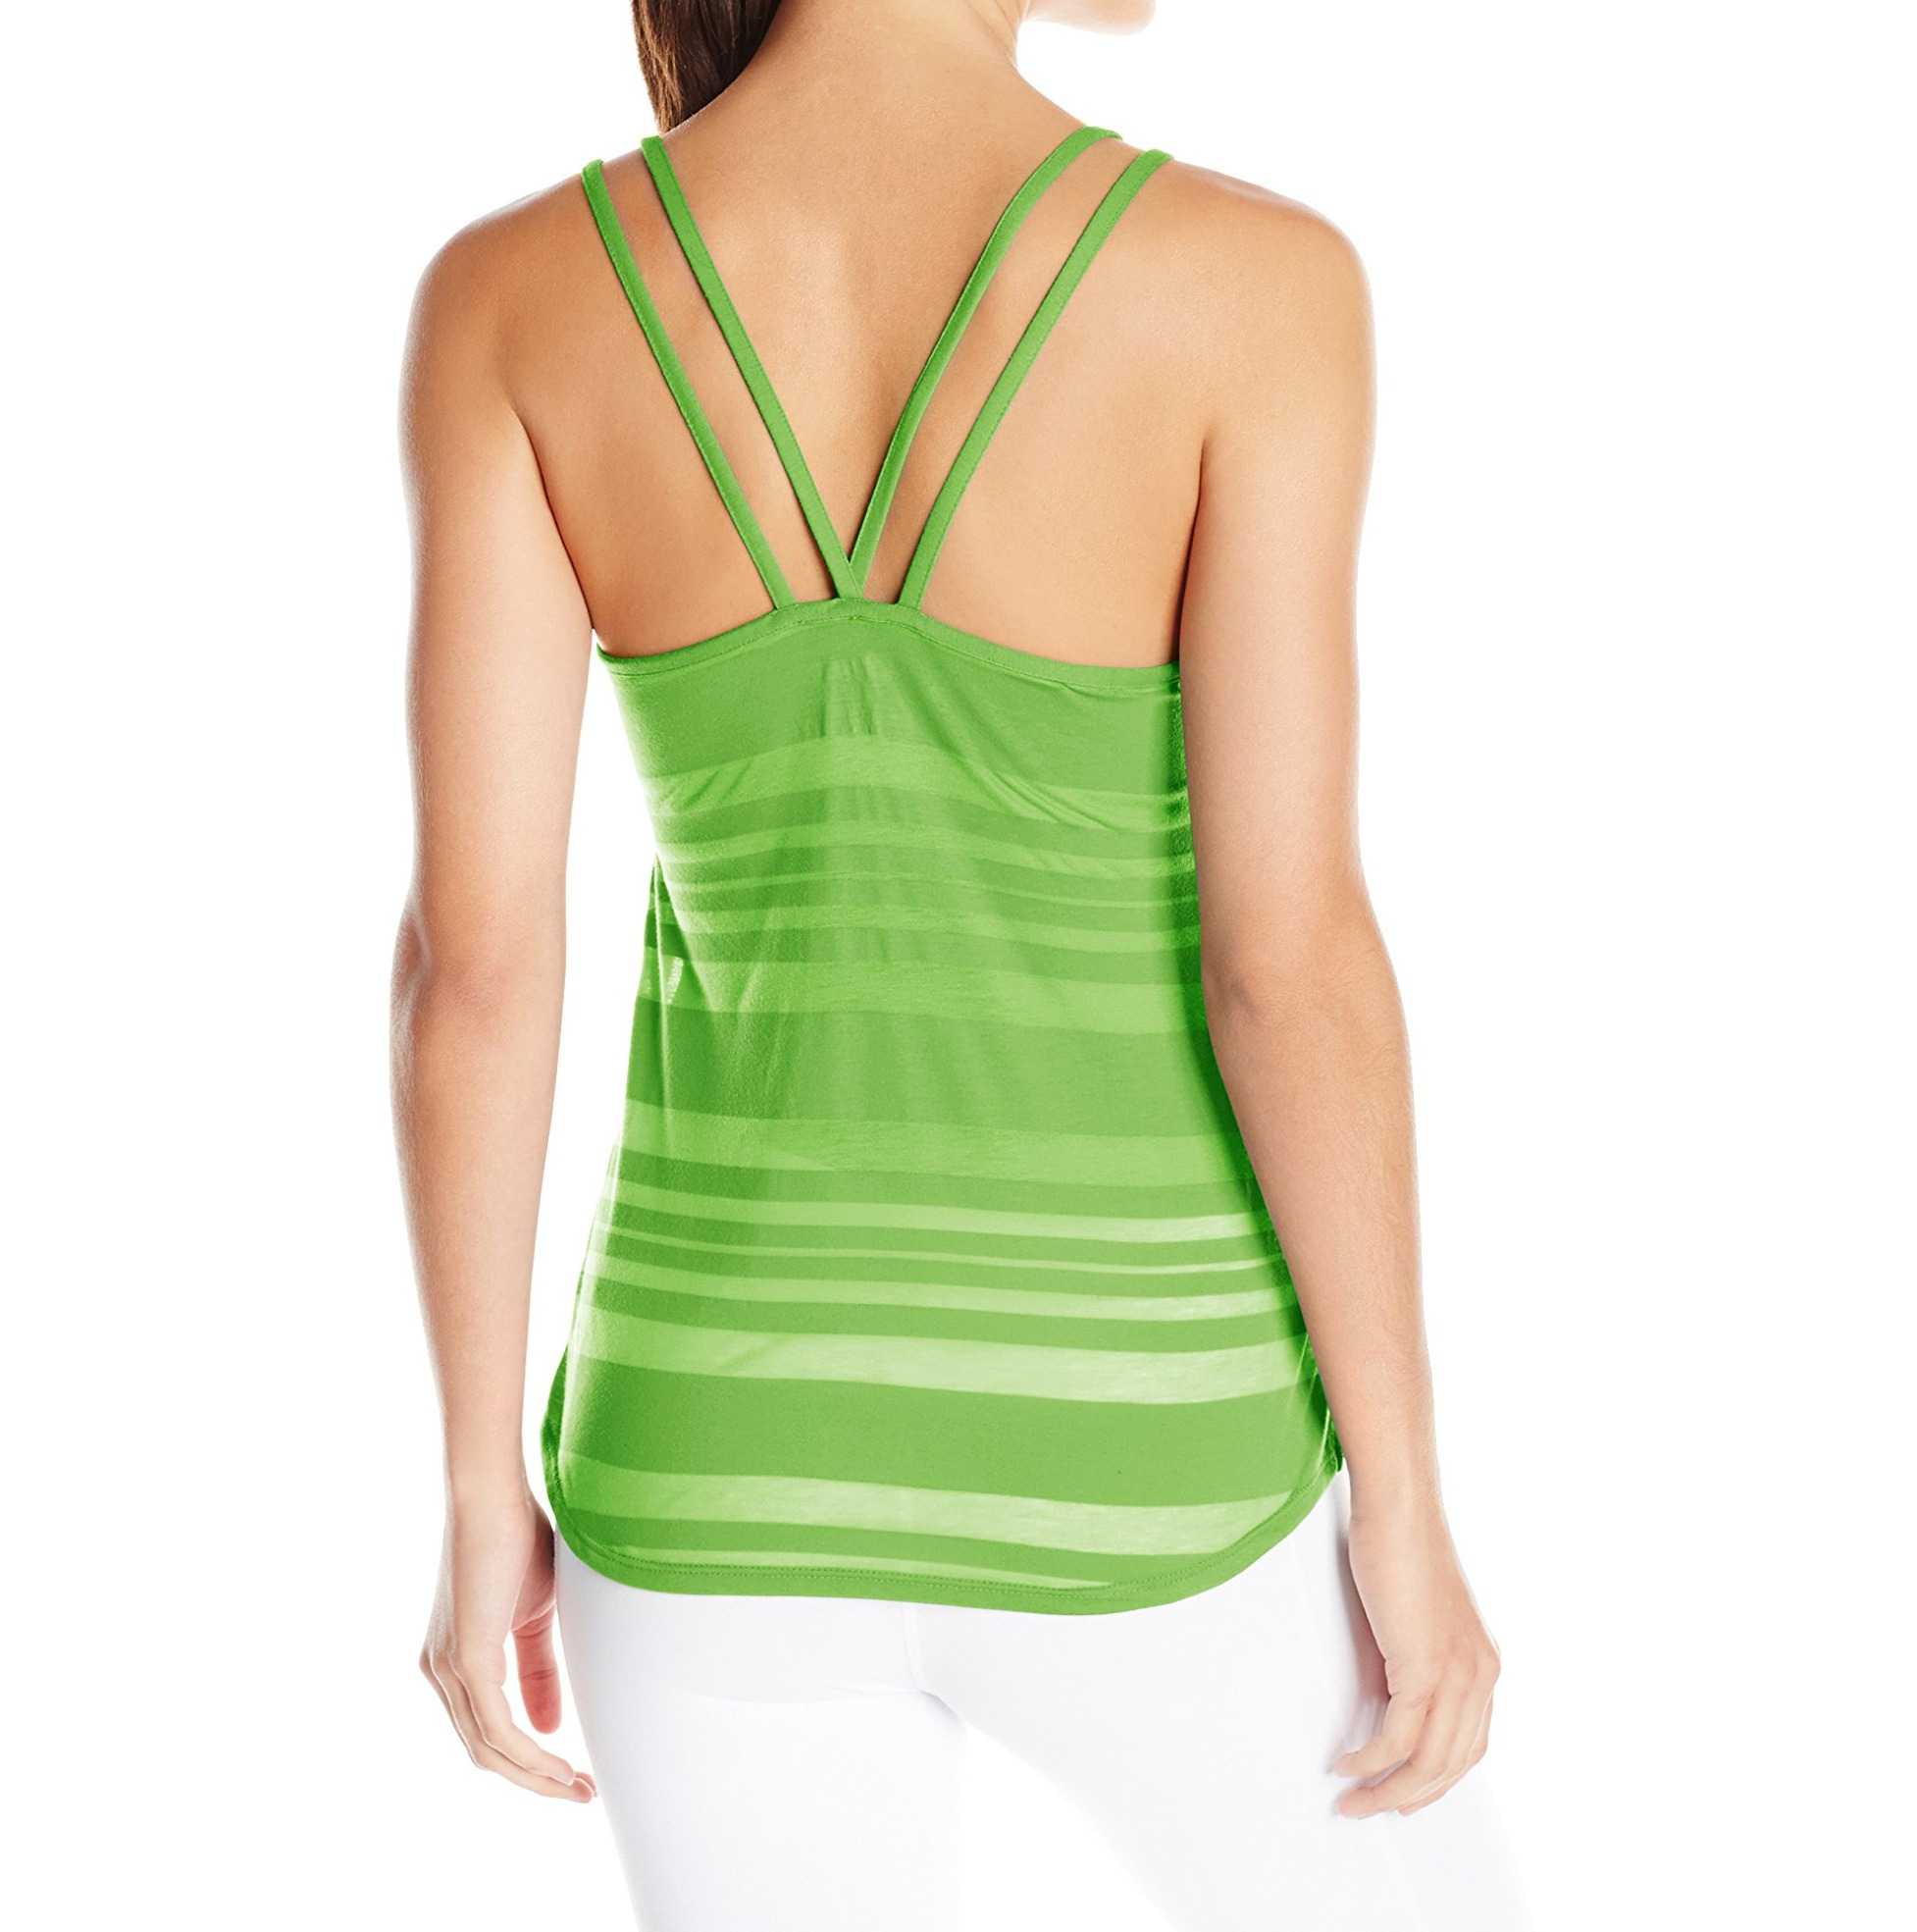 Asics-NEW-Solid-Women-039-s-Slub-Knit-Performance-Scoop-Neck-Tank-Top thumbnail 14